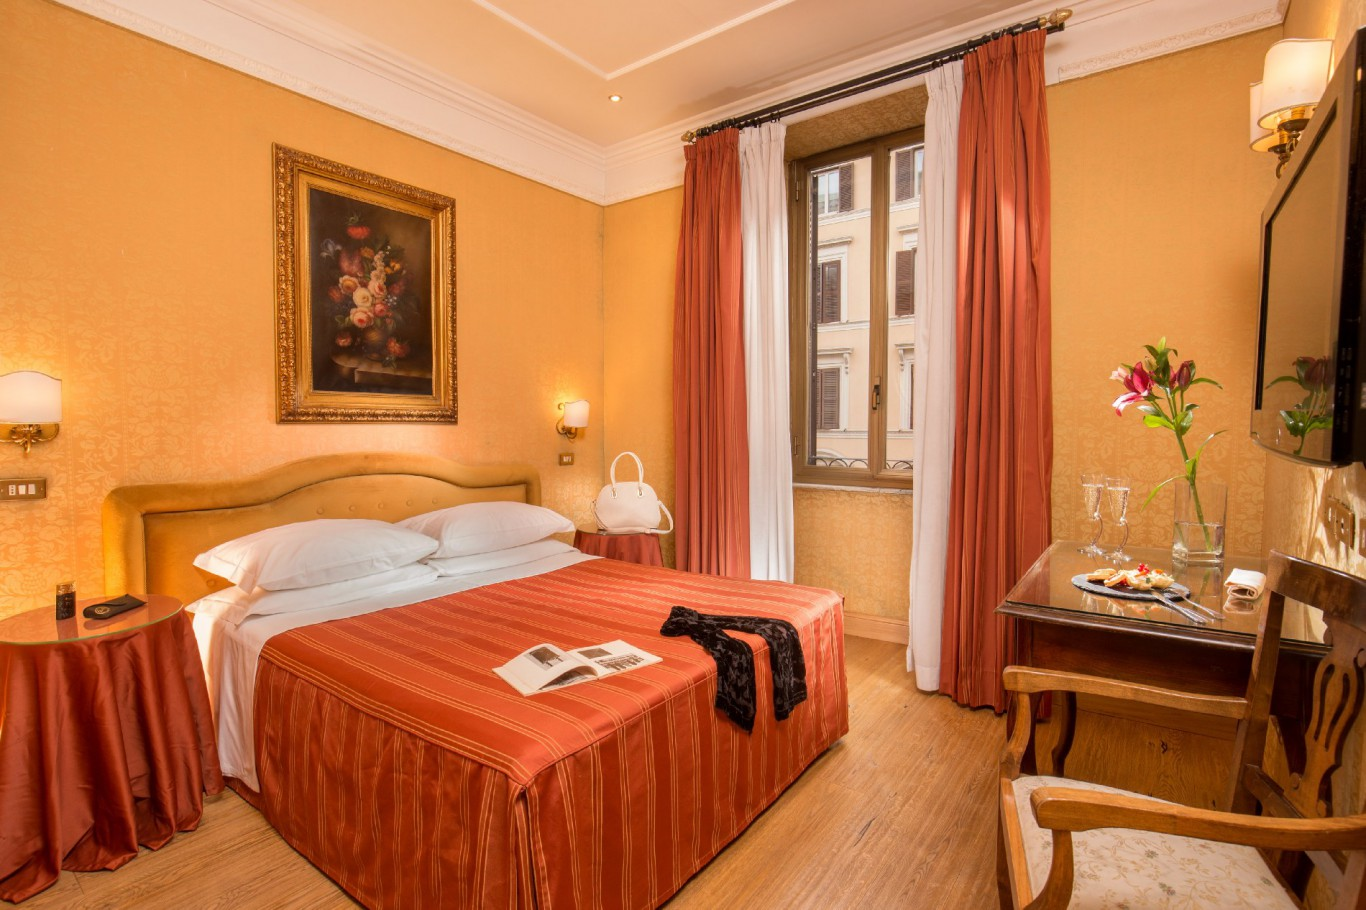 Hotel-Morgana-Rome-deluxe-room3